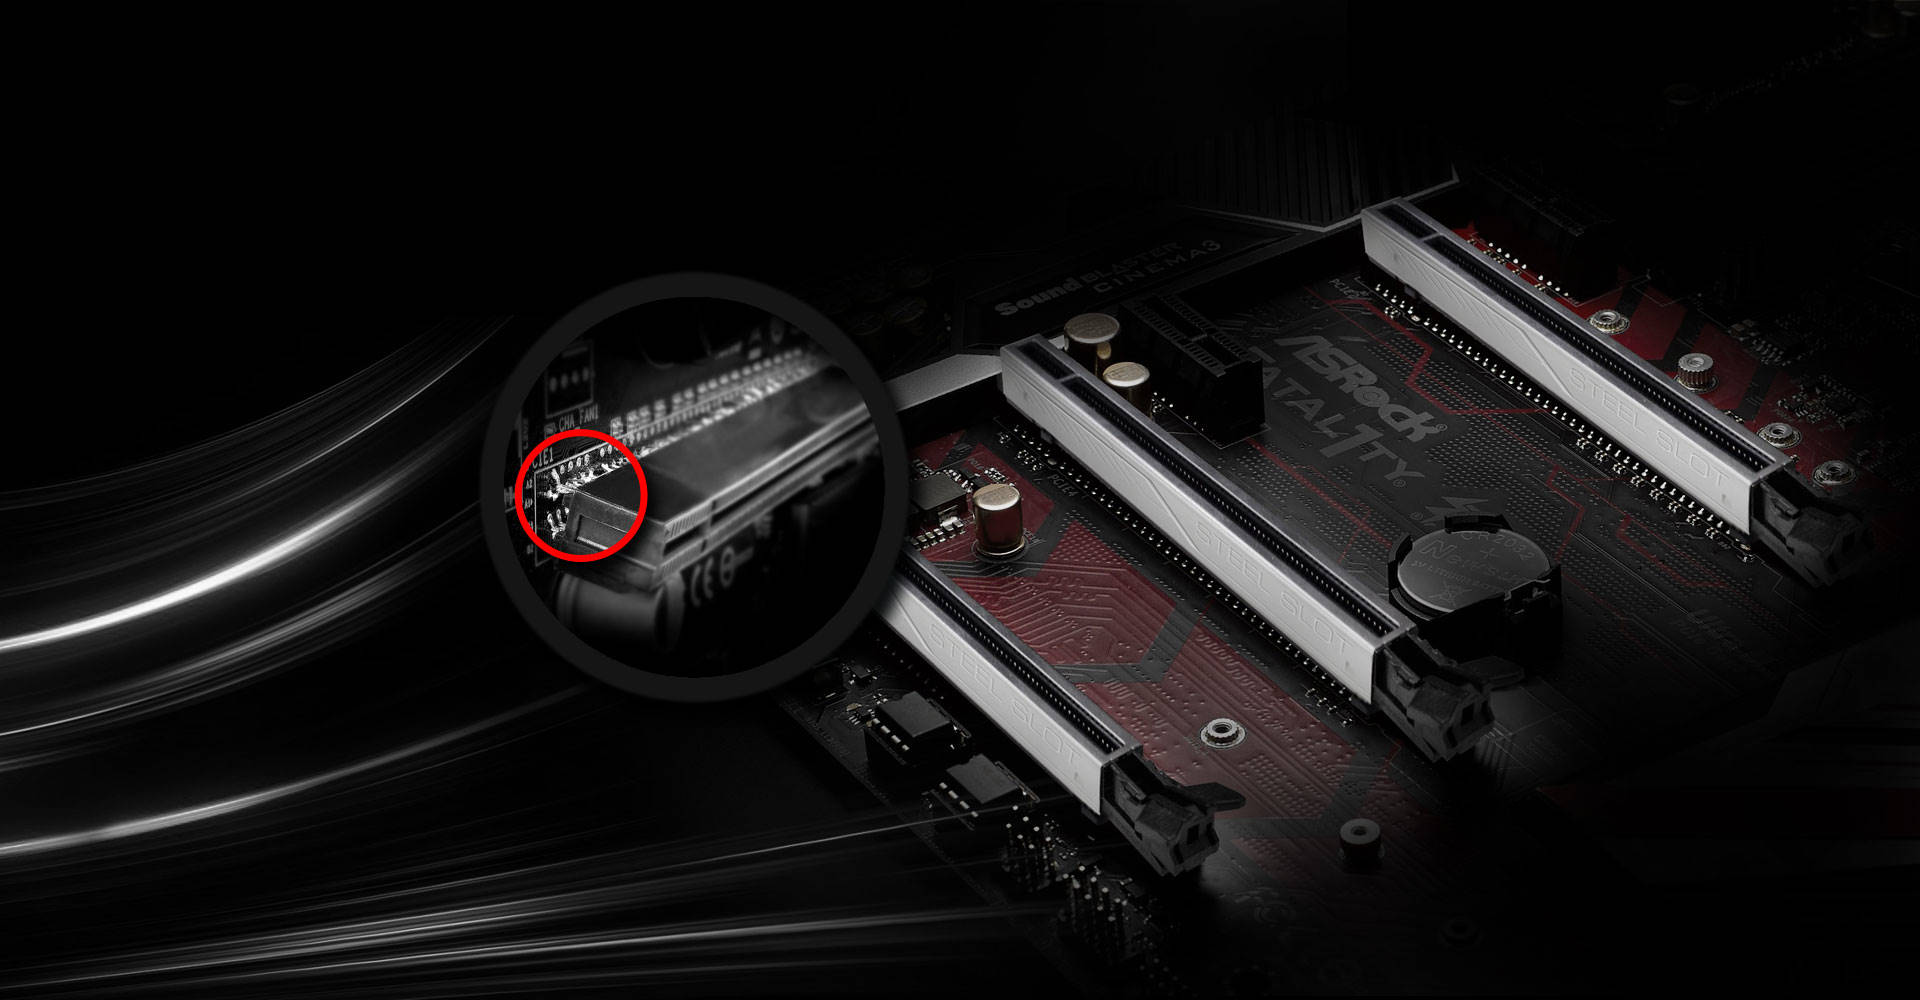 Asrock Fatal1ty X99 Professional Gaming I7 Block Diagram For The Chipset Advanced Pci E Steel Slot Packed With Solid Cover That Prevent Any Signal Interference Graphics Cards It Also Ensures Heavy To